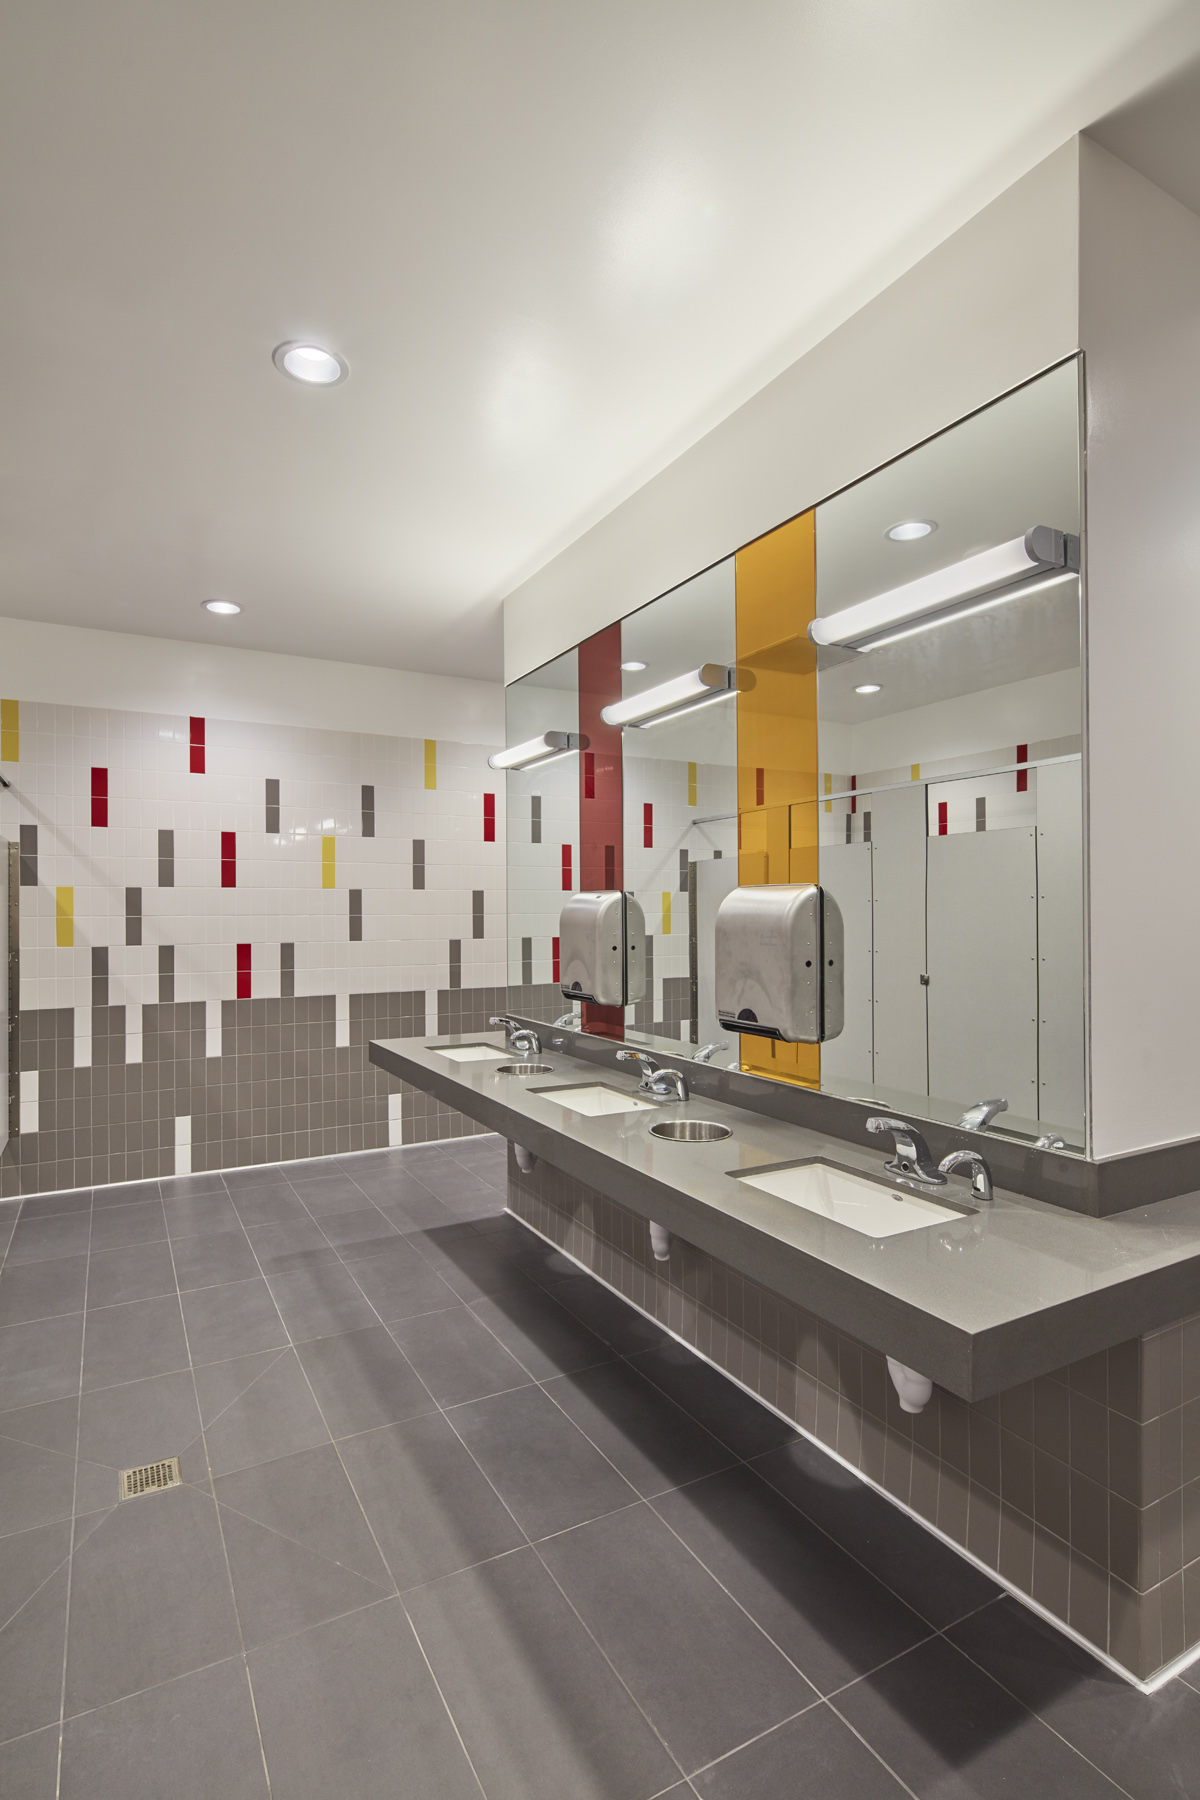 Typical restroom